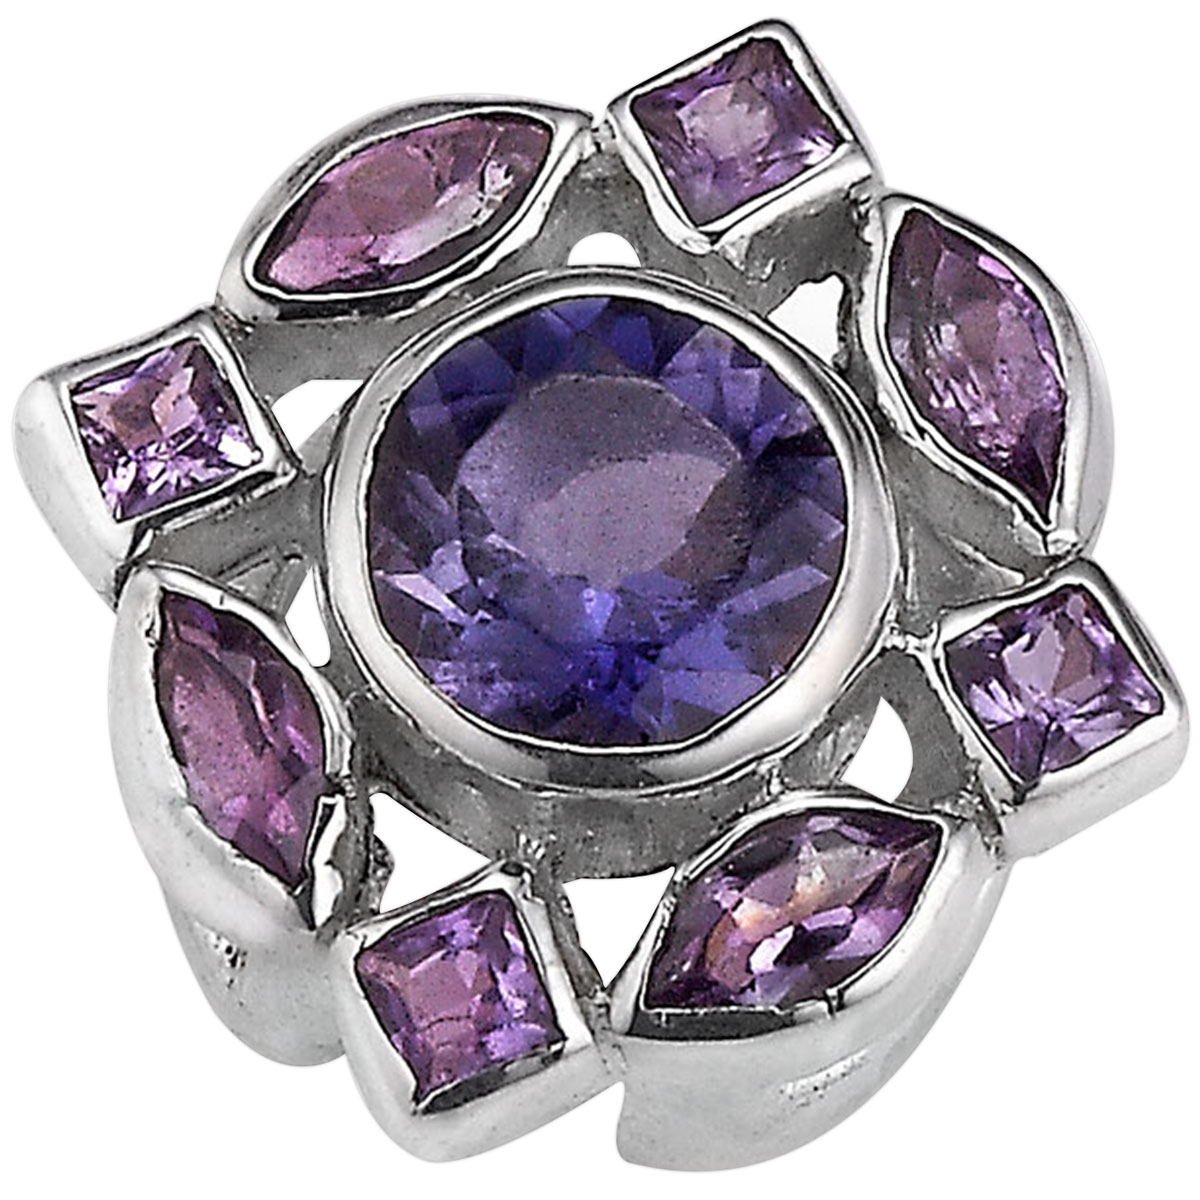 338682-Lori Bonn Violets are Blue Slide Charm LIMITED EDITION ONLY 5 LEFT!